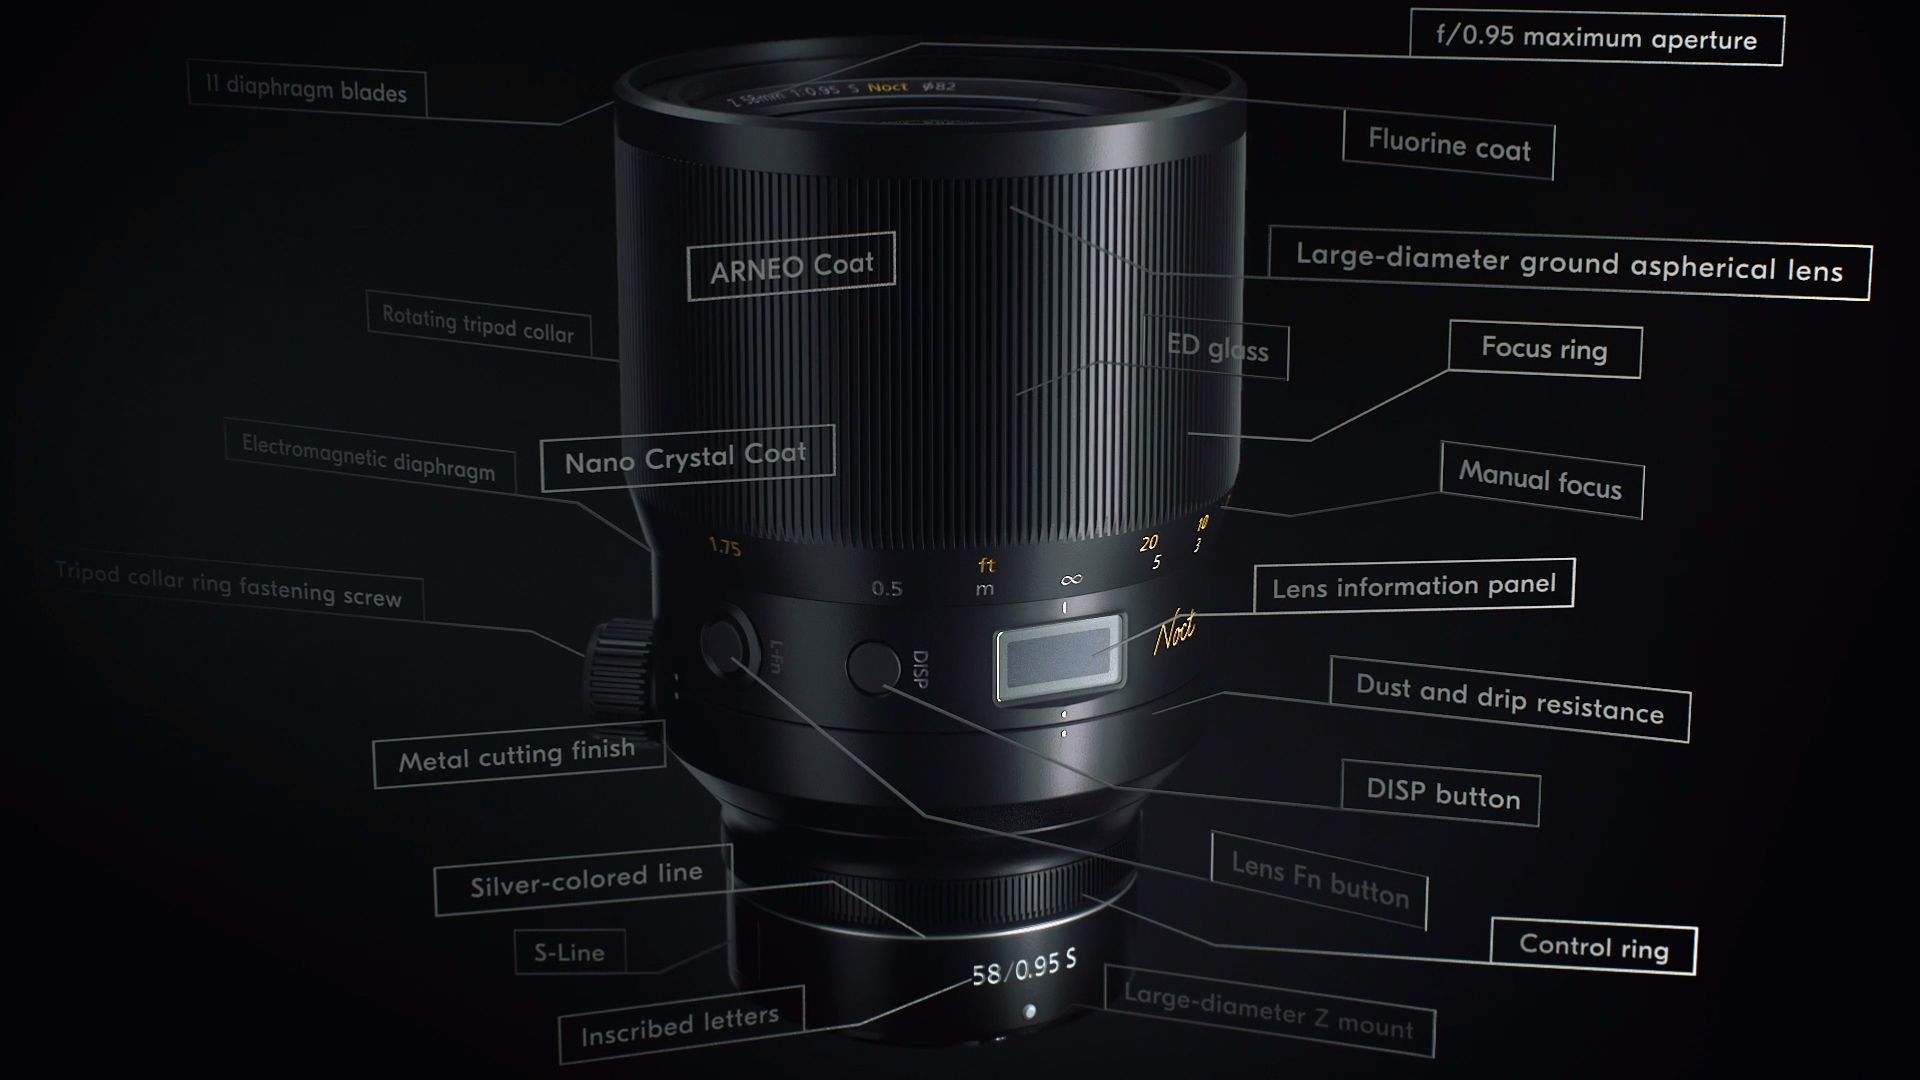 The NIKKOR Z 58mm f/0.95 S Noct requires masterful craftsmanship like no other